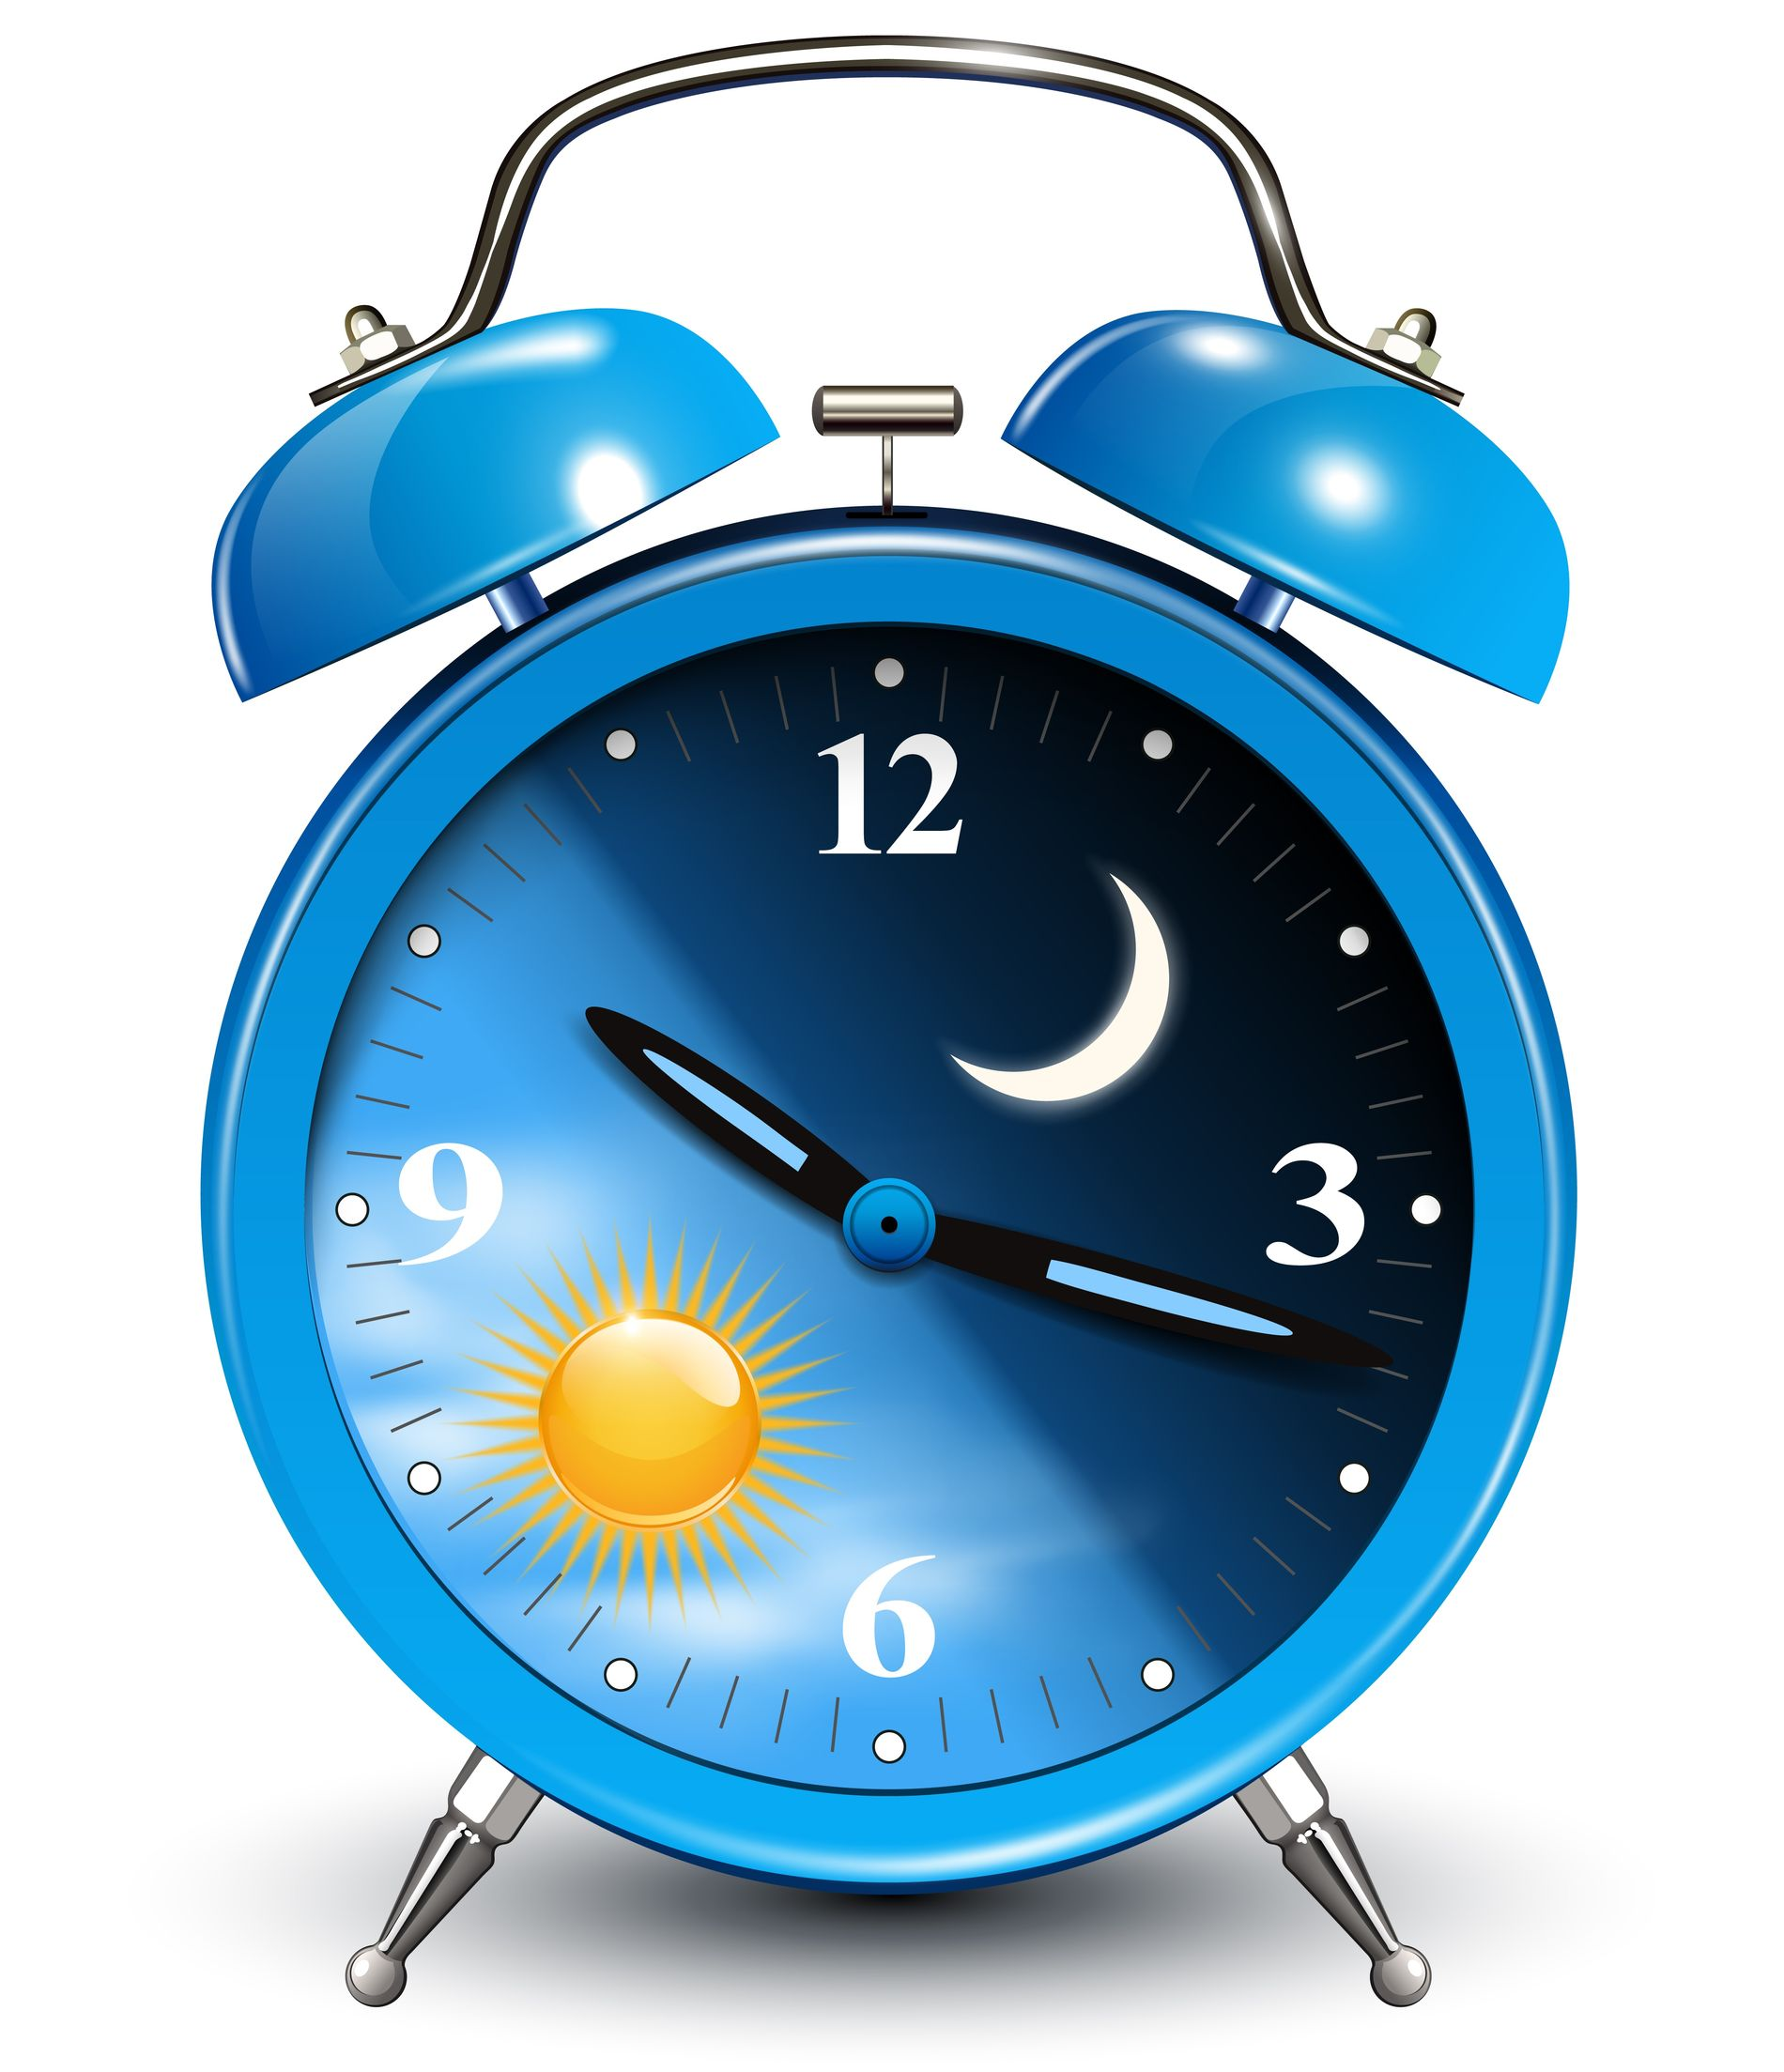 Use Of Melatonin For Cognitive Function And Sleep In Mild